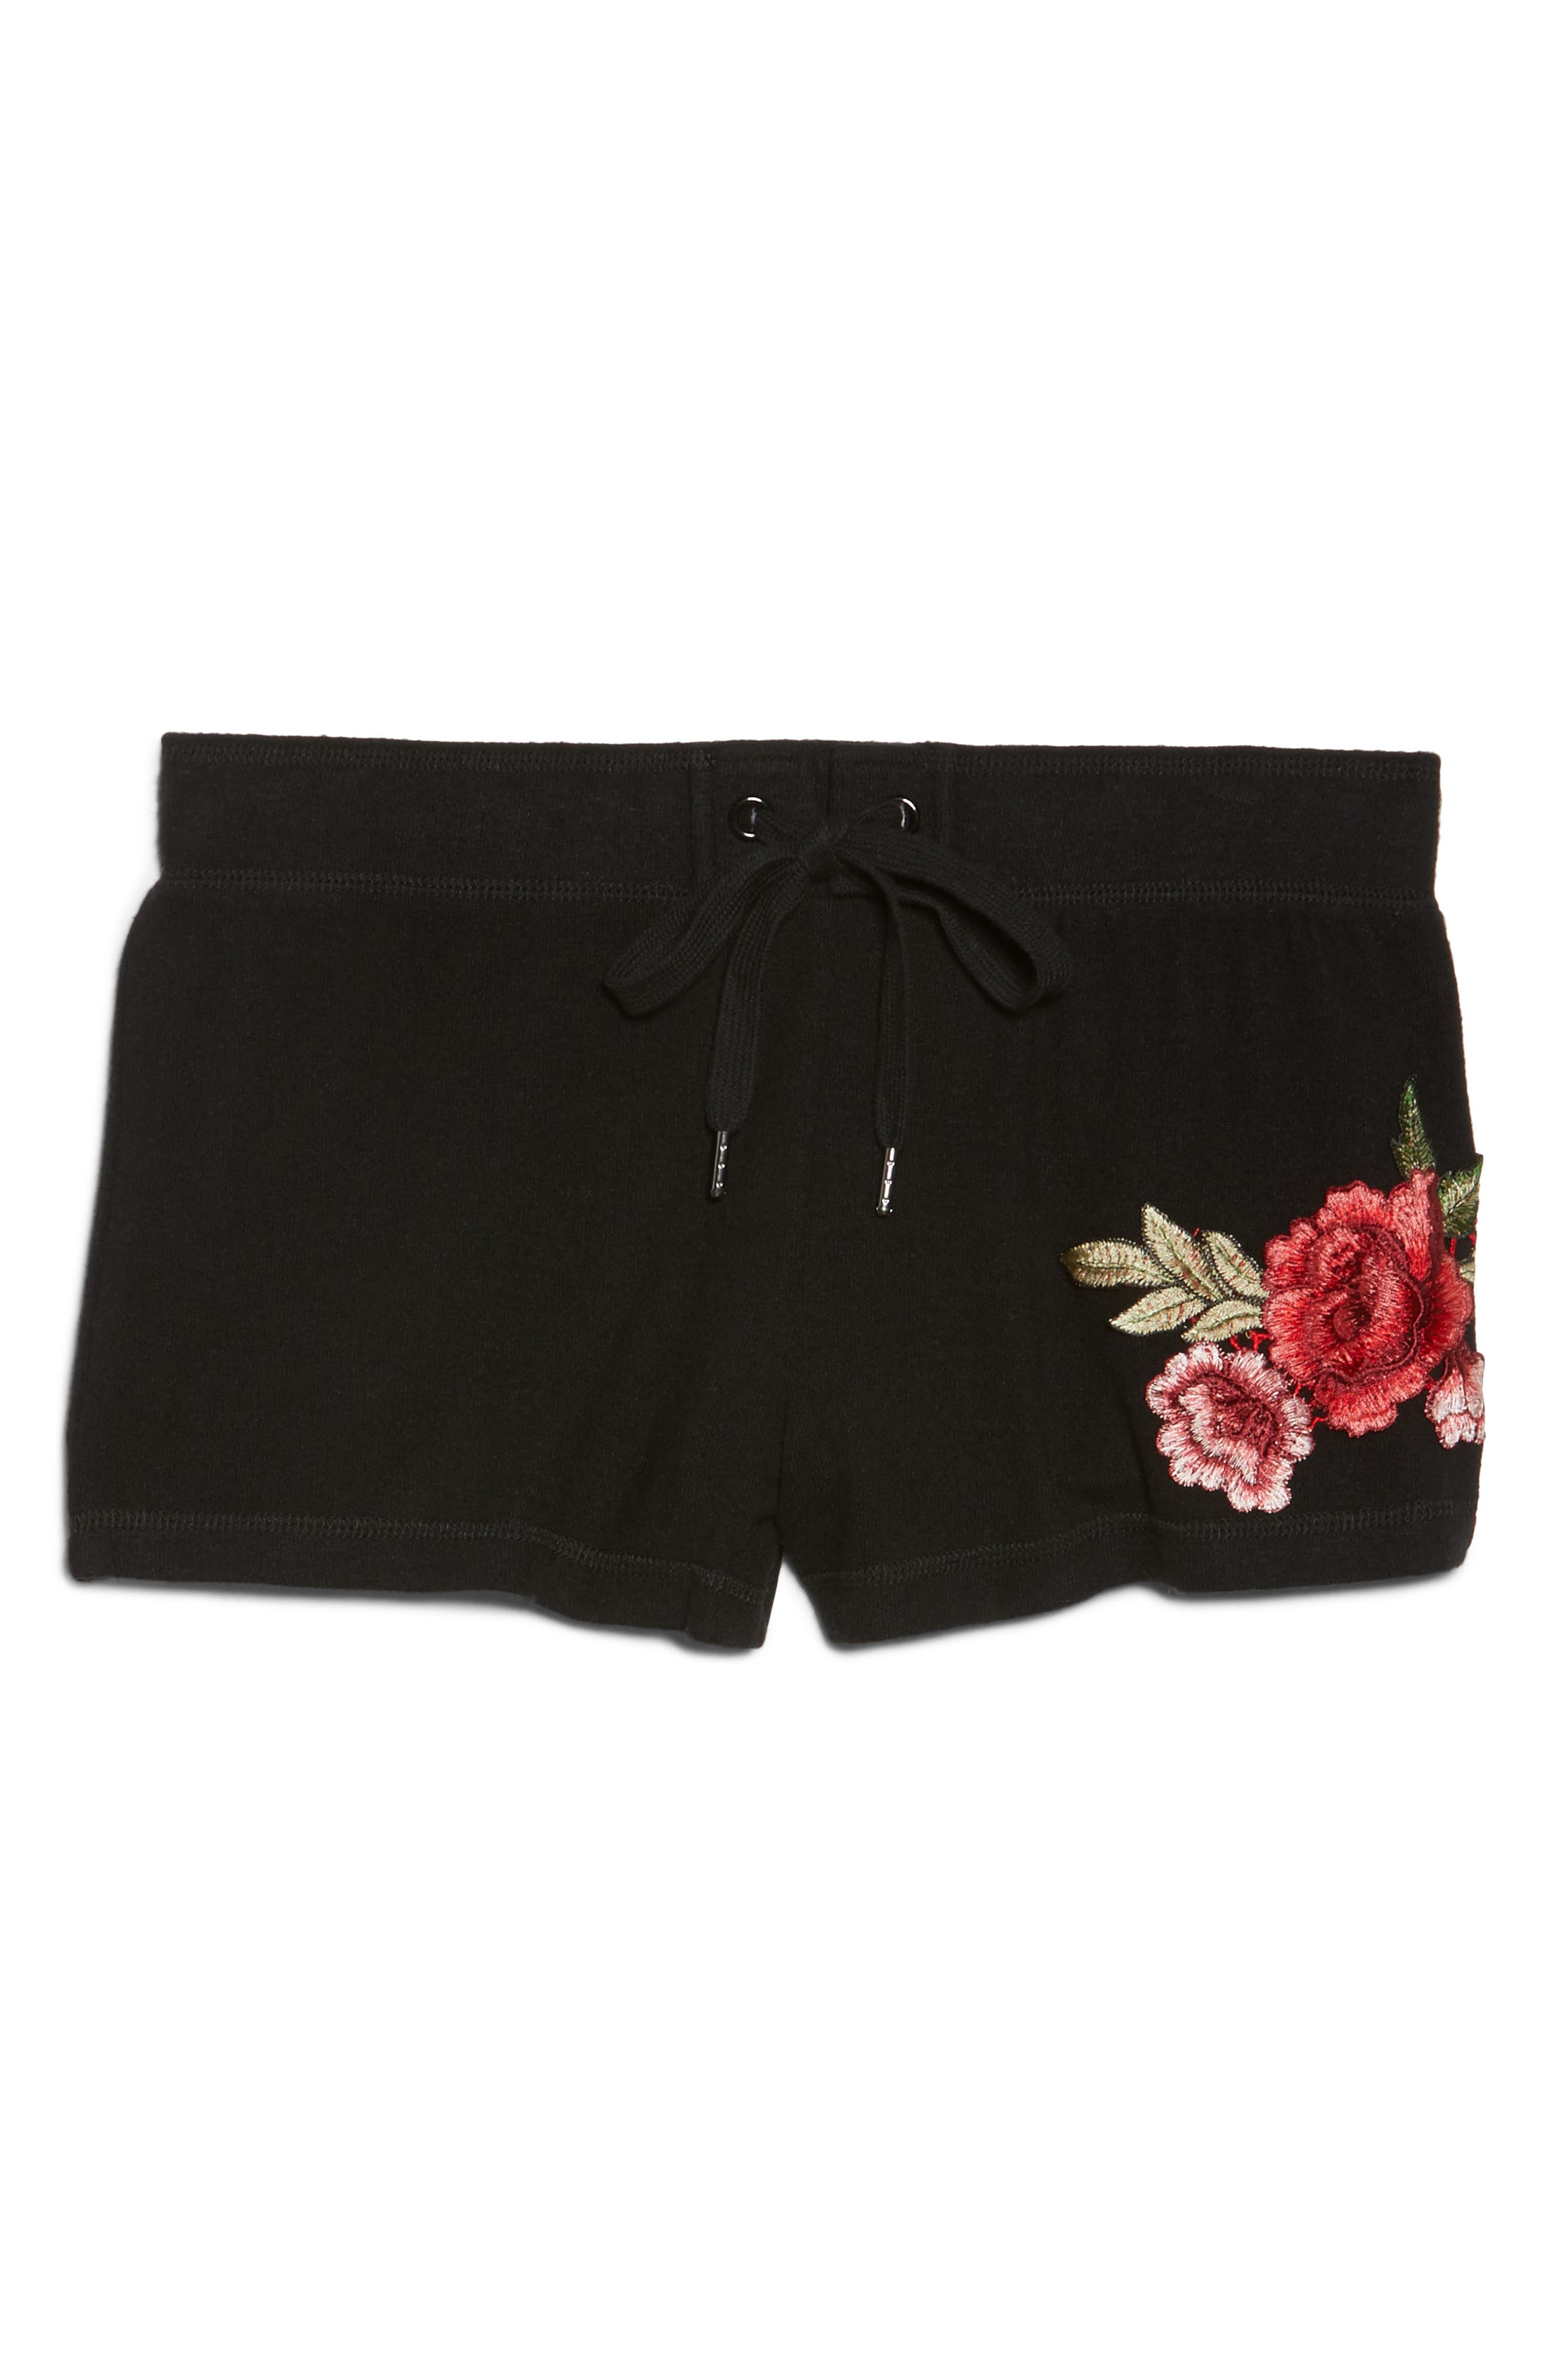 Embroidered Lounge Shorts,                             Alternate thumbnail 6, color,                             001